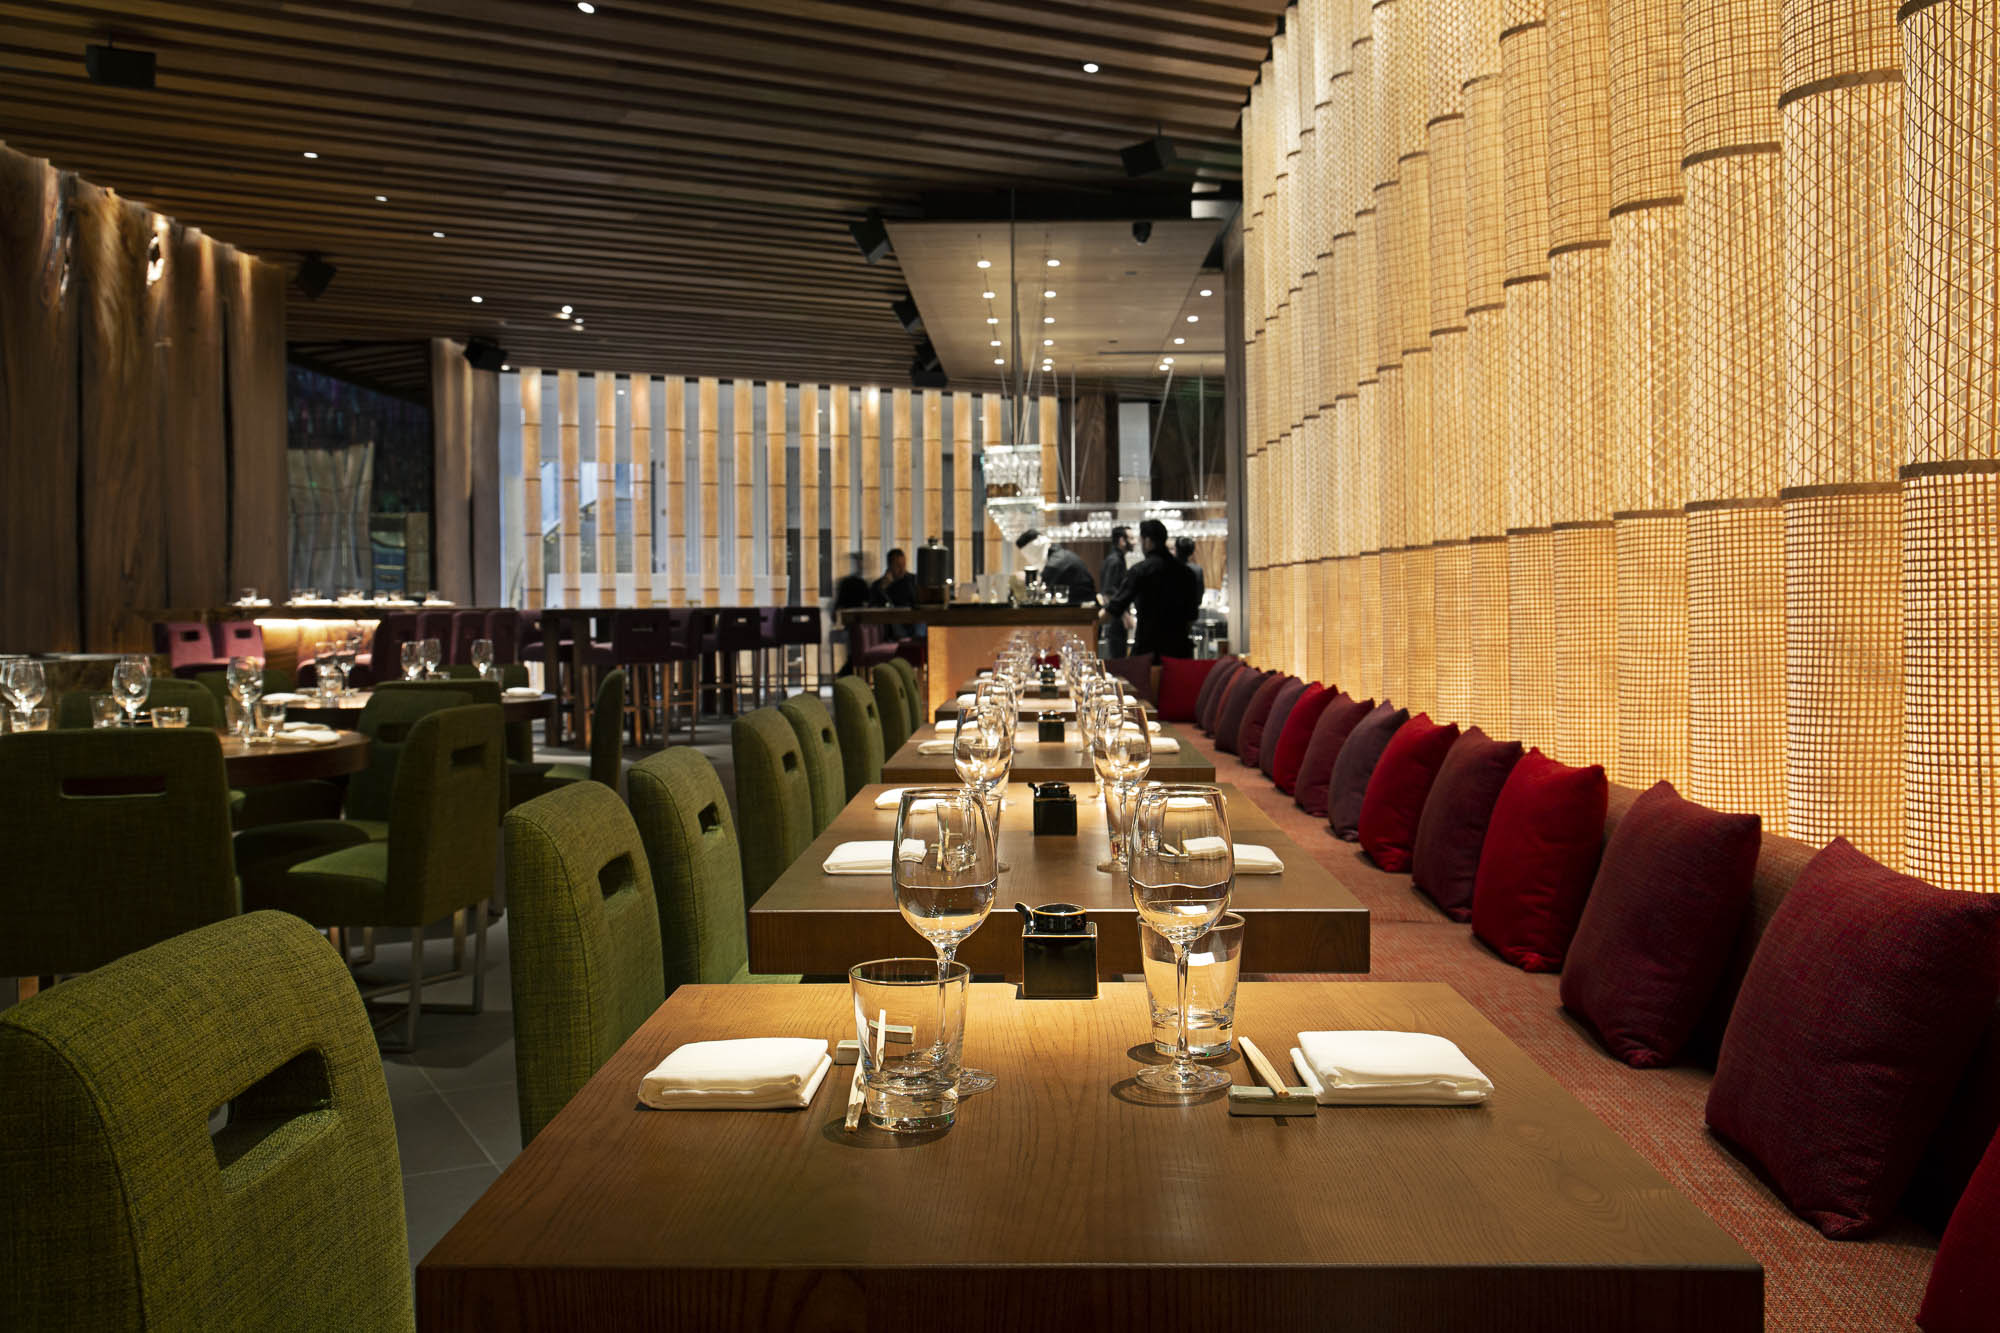 Interior restaurant photo showing an upscale space with plush dark red pillows lining a banquette, lots of slats of light wood, and light wood tables